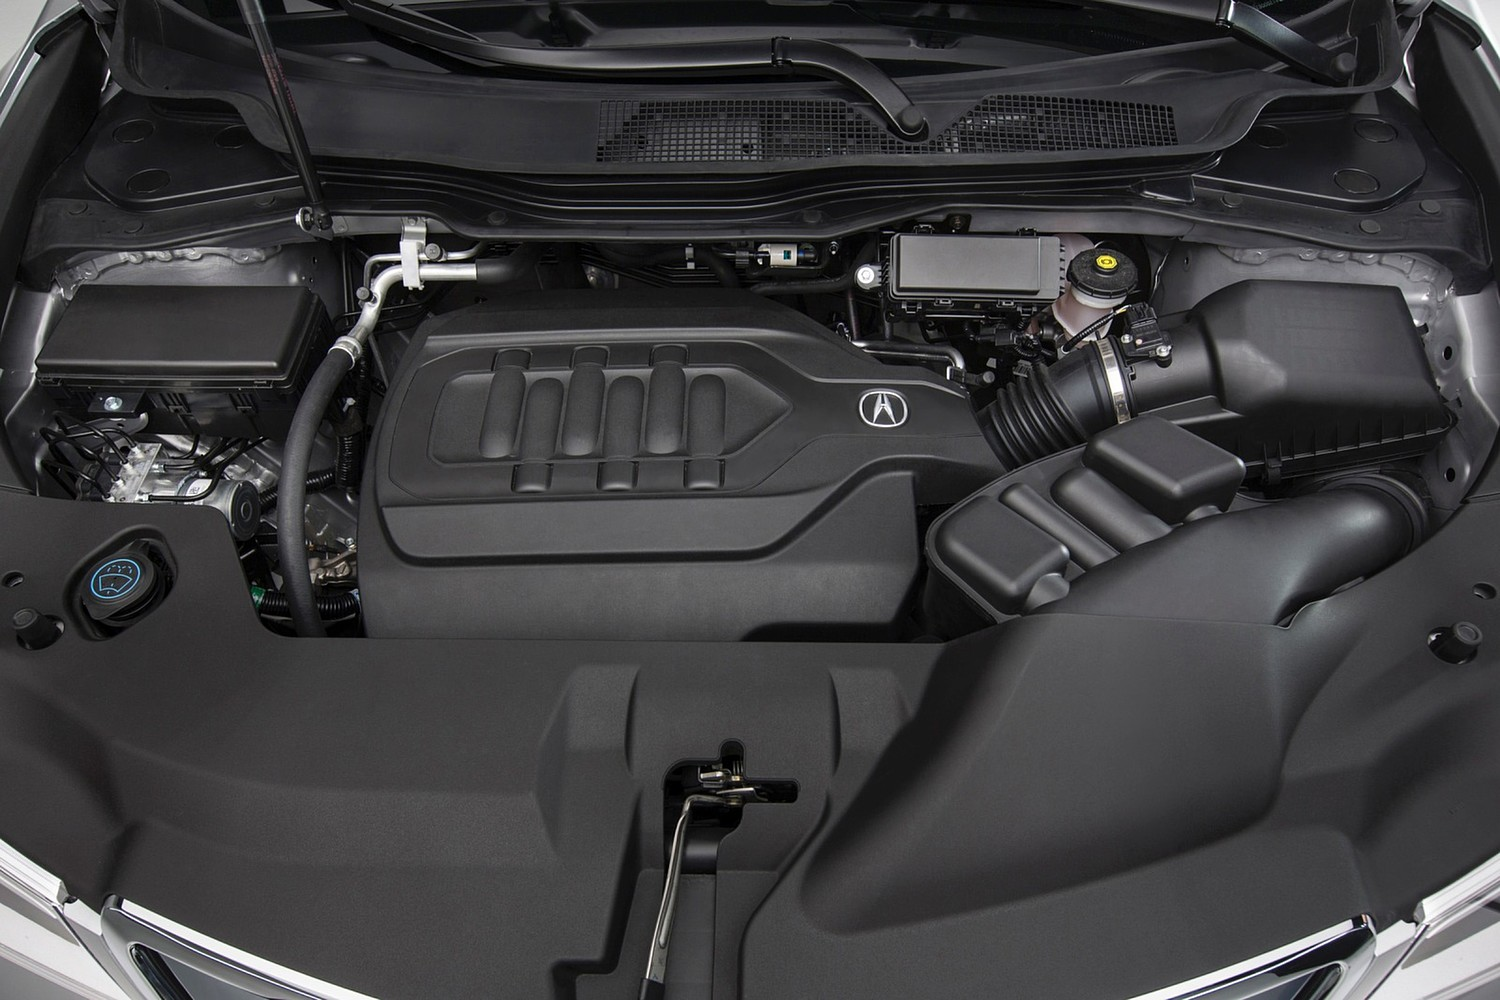 Acura MDX SH-AWD w/Technology and Entertainment Packages 4dr SUV Engine (2014 model year shown)